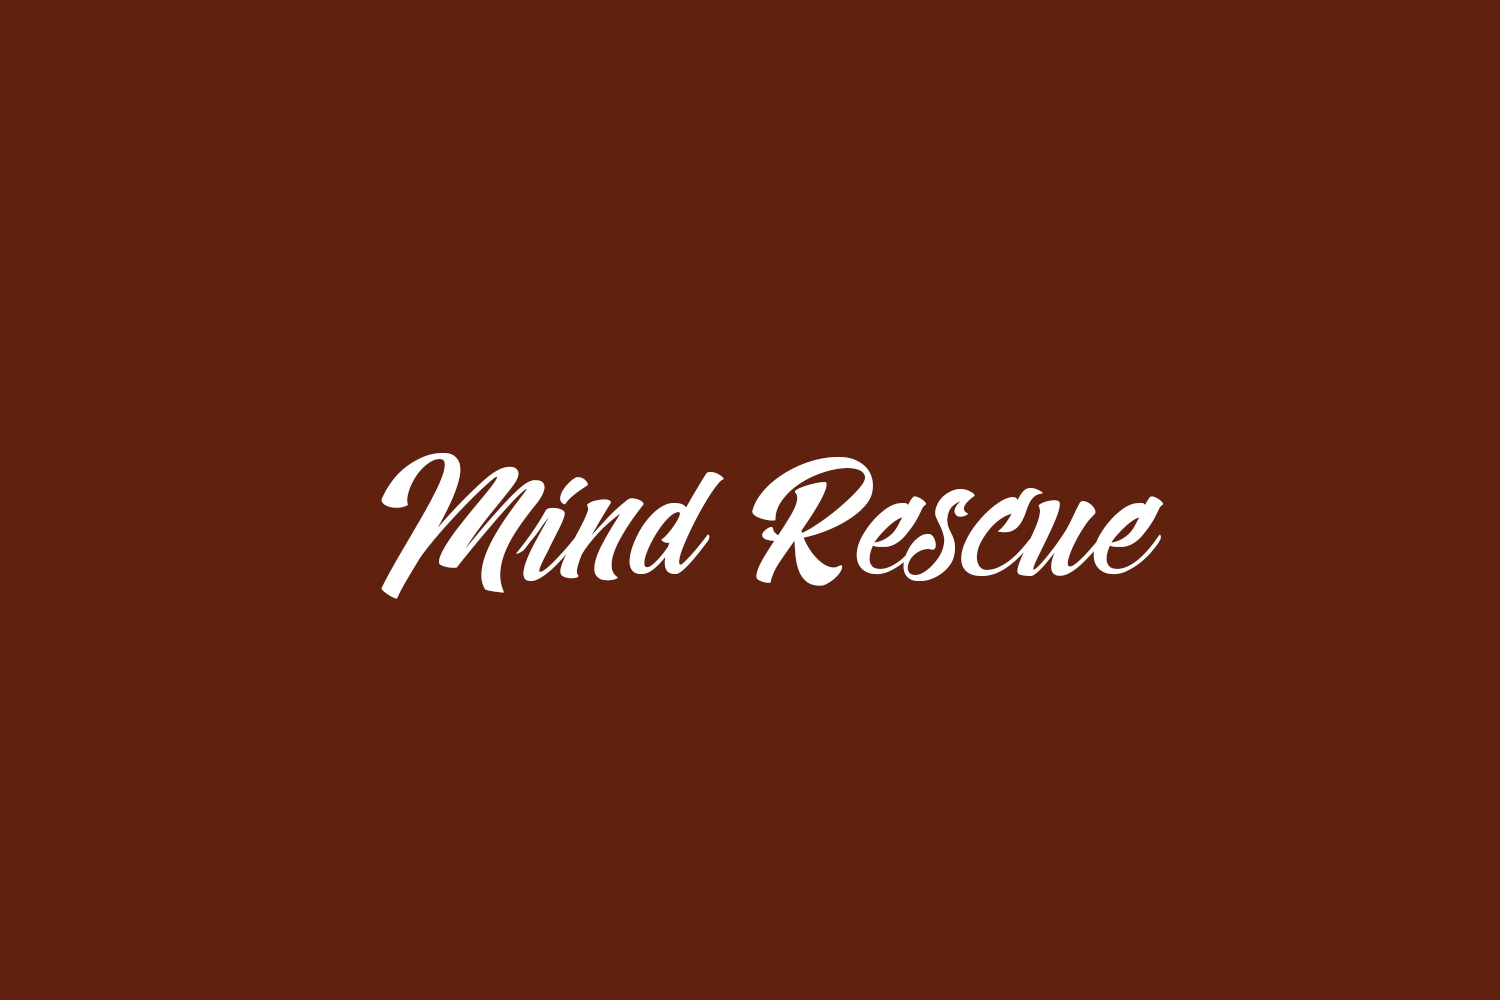 Mind Rescue Free Font